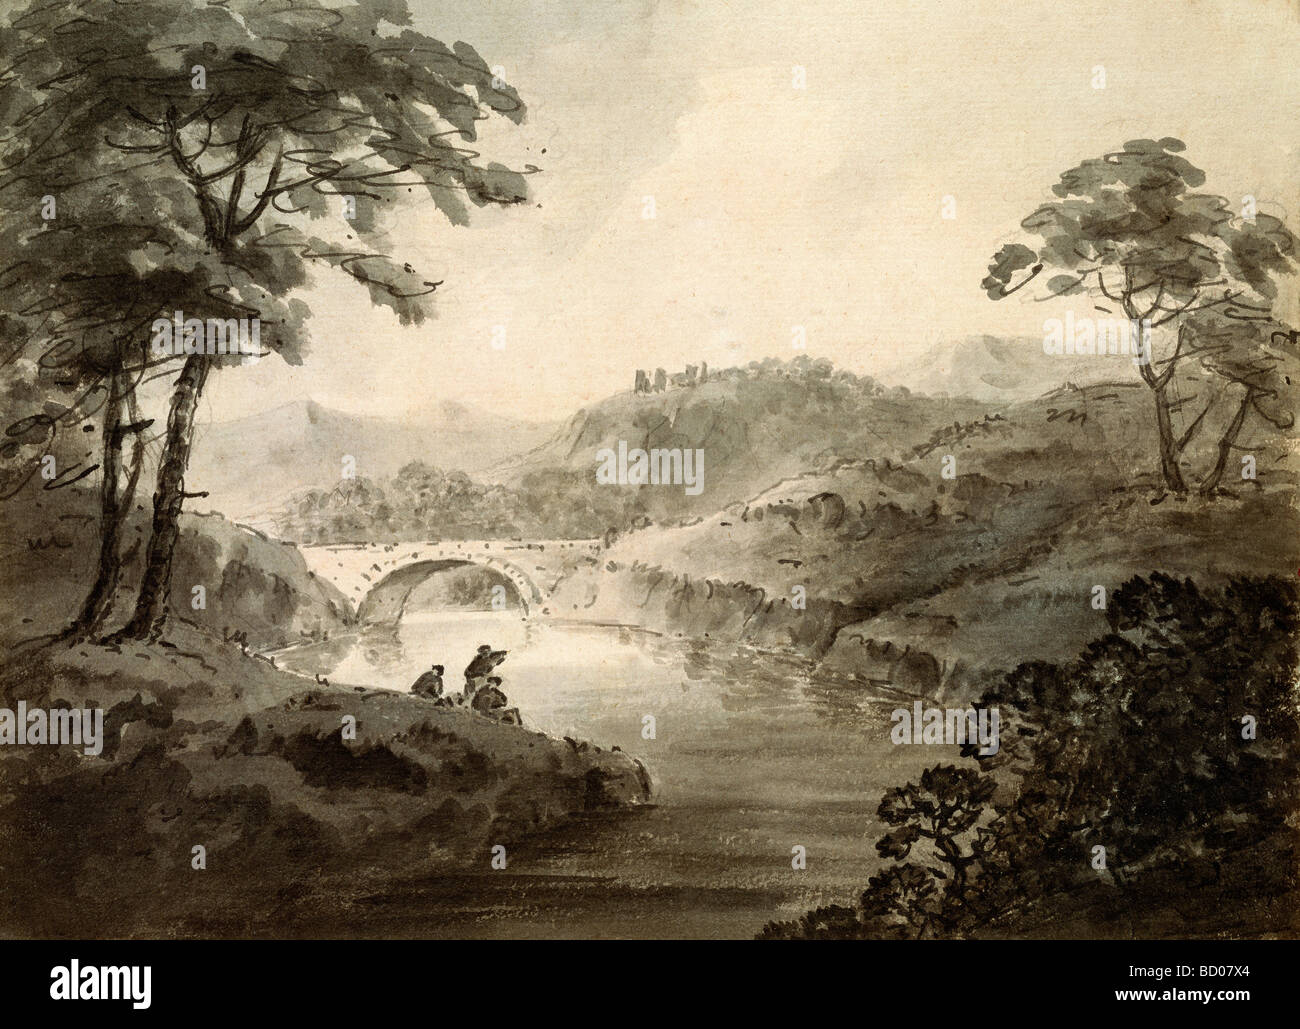 Landscape, by William Gilpin. England, 18th-19th century - Stock Image